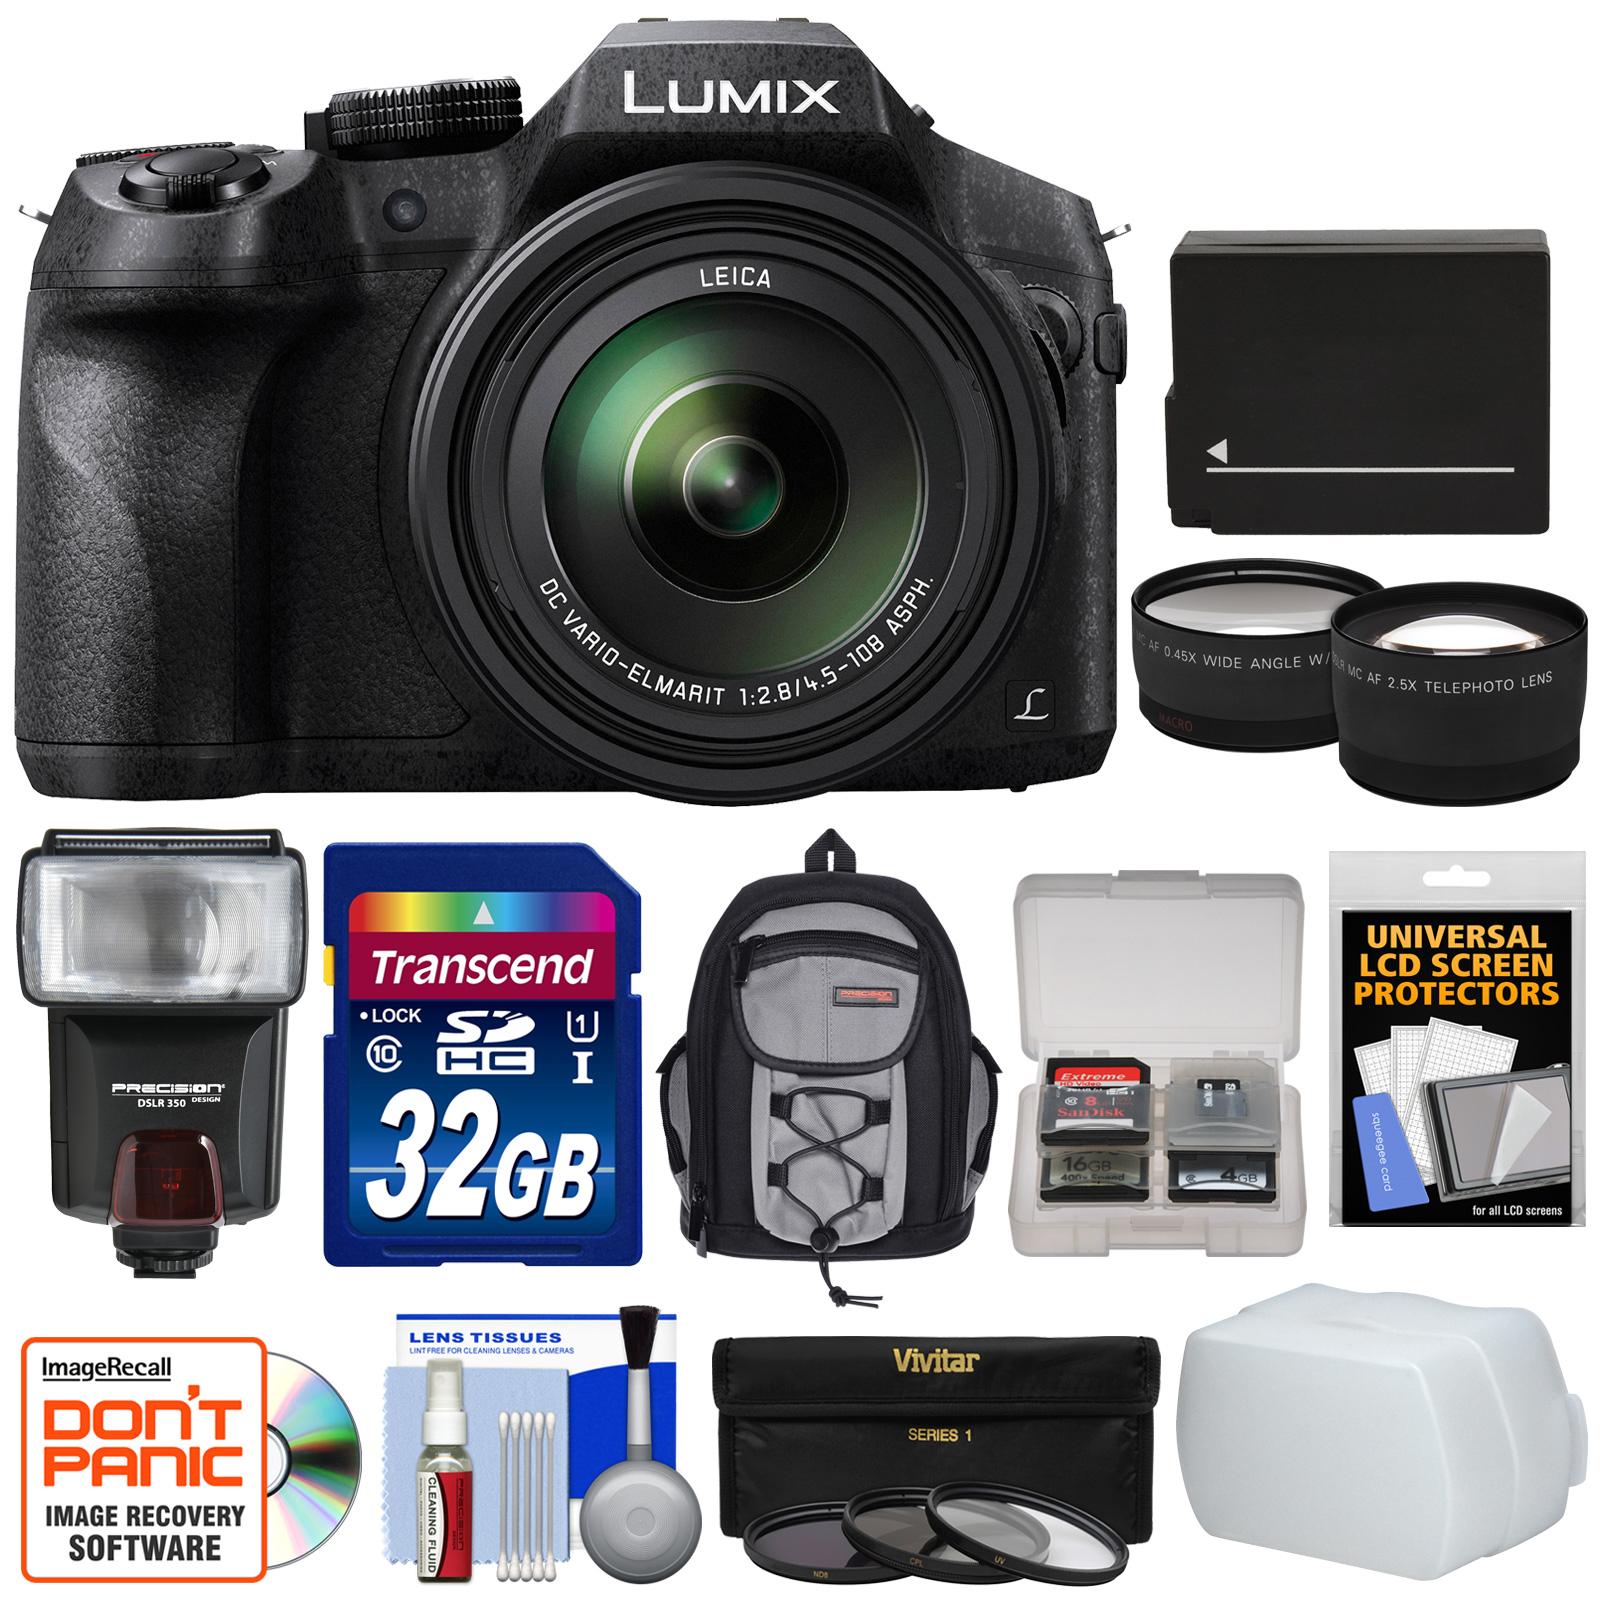 Panasonic Lumix DMC-FZ300 4K Wi-Fi Digital Camera with 32GB Card + Battery + Backpack + Flash + Filters + Tele/Widee Lens Kit